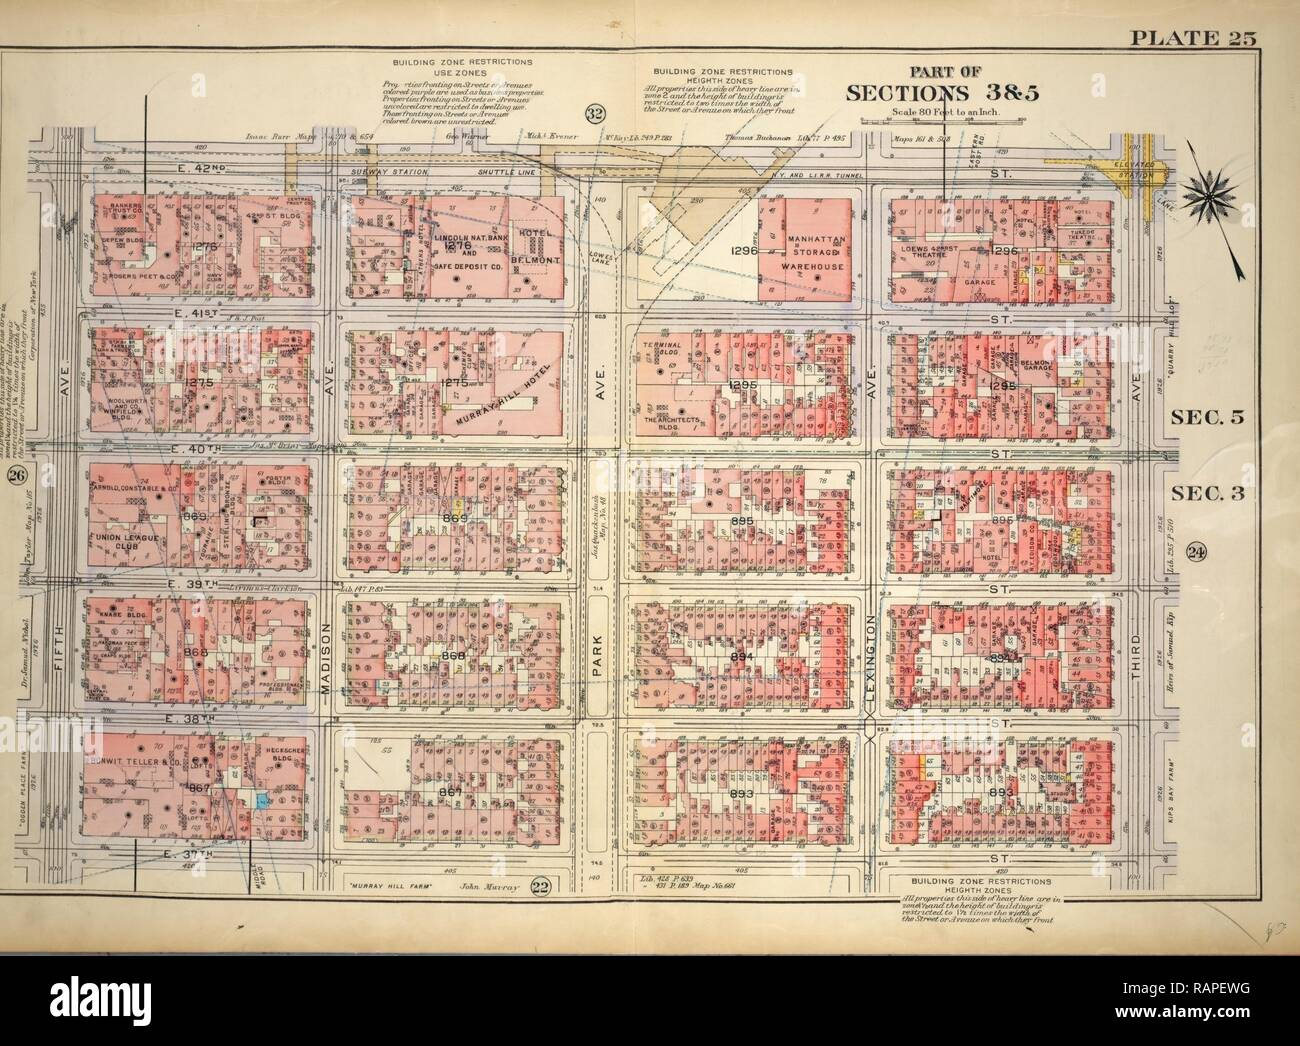 Plate 25, Part of Sections 3&5: Bounded by E. 42nd Street, Third Avenue, E. 37th Street and Fifth Avenue, New York reimagined - Stock Image